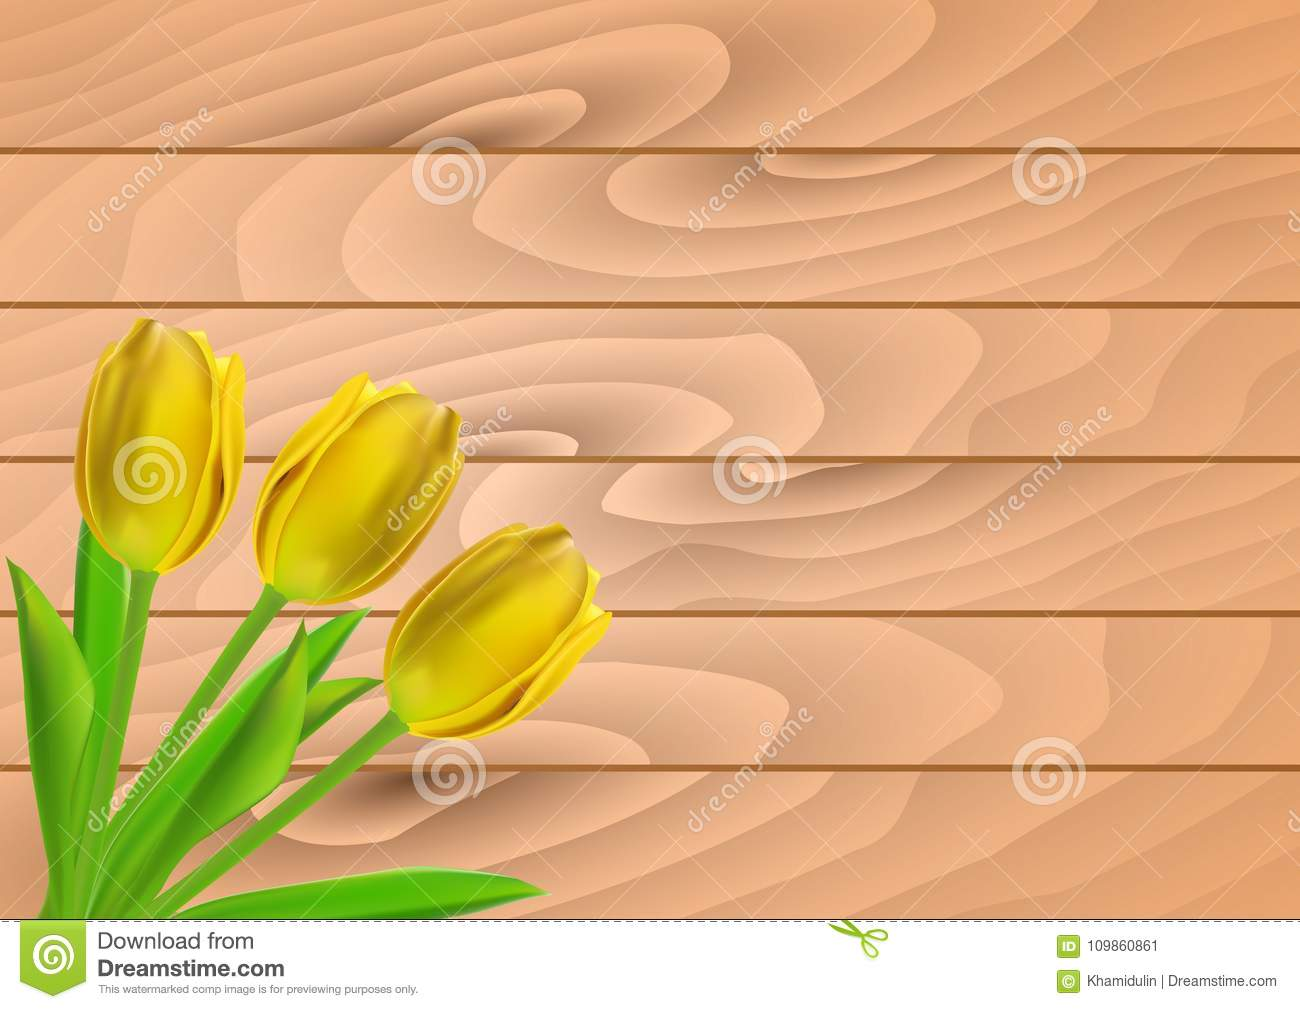 vector greeting card template with tulip flowers on wooden planks